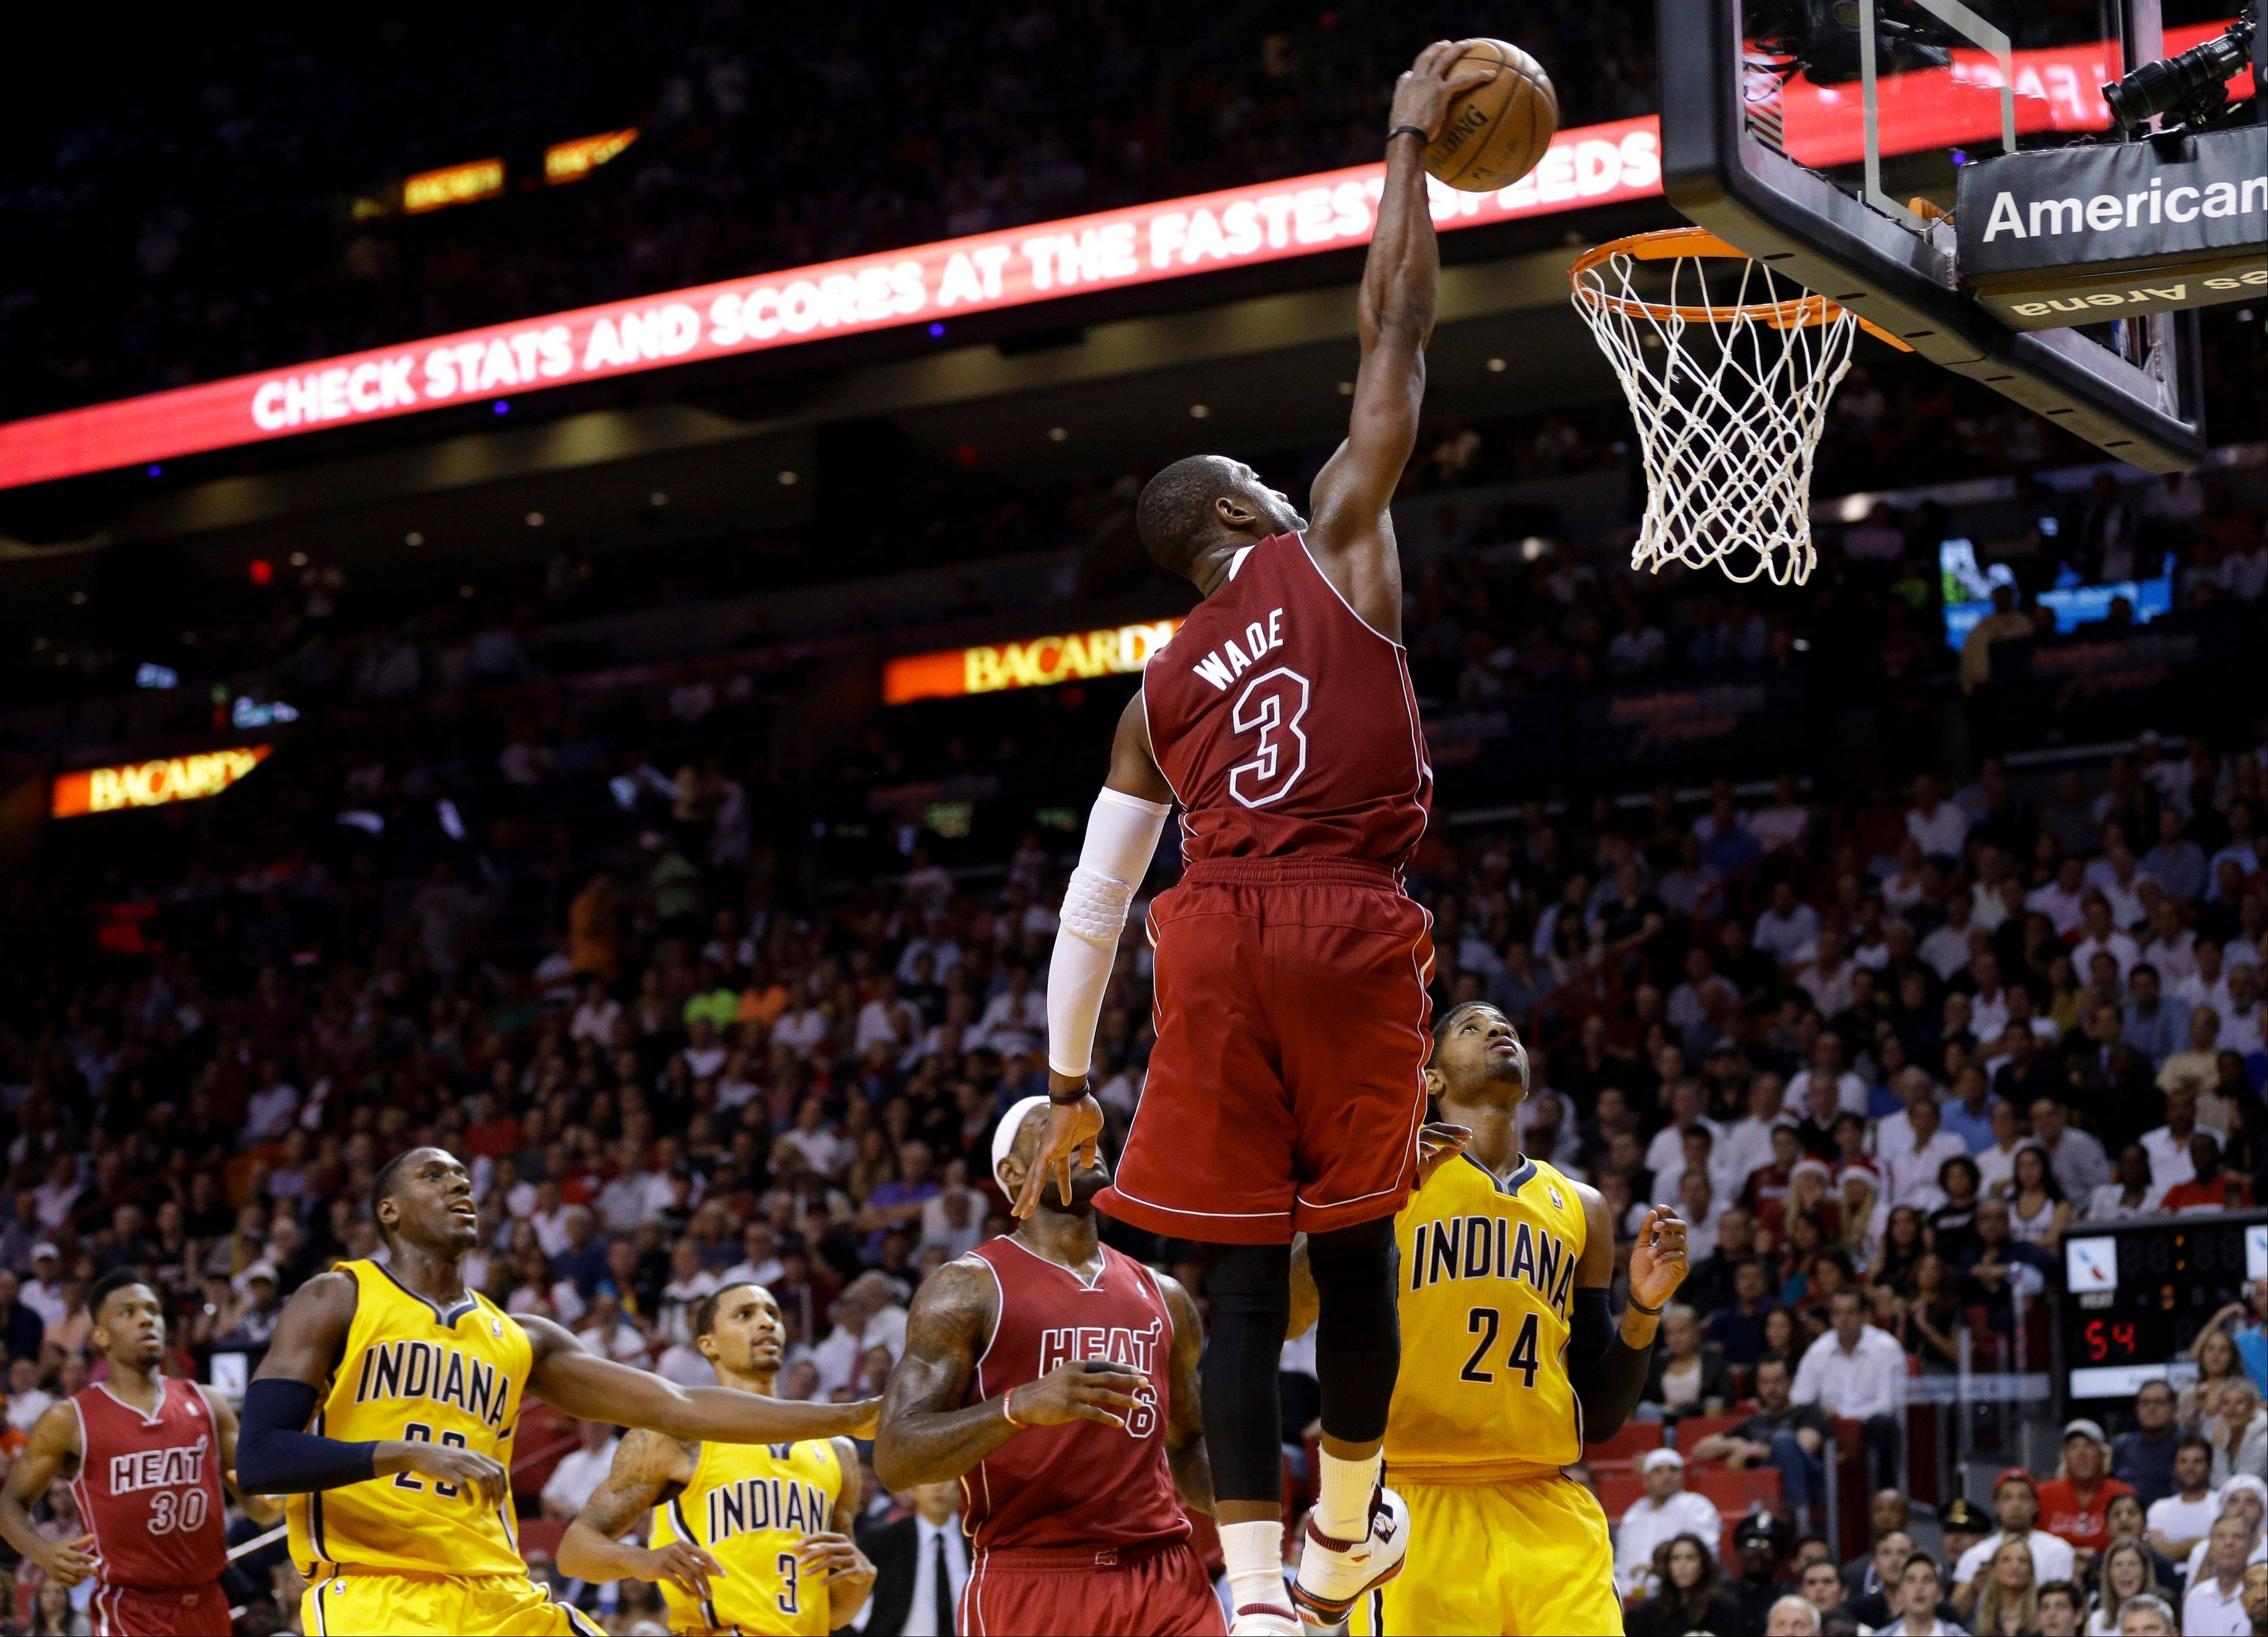 Miami Heat's Dwyane Wade (3) dunks over Indiana Pacers' Ian Mahinmi, left, and Paul George (24) during the second half of an NBA basketball game Wednesday in Miami. The Heat defeated the Pacers 97-94.